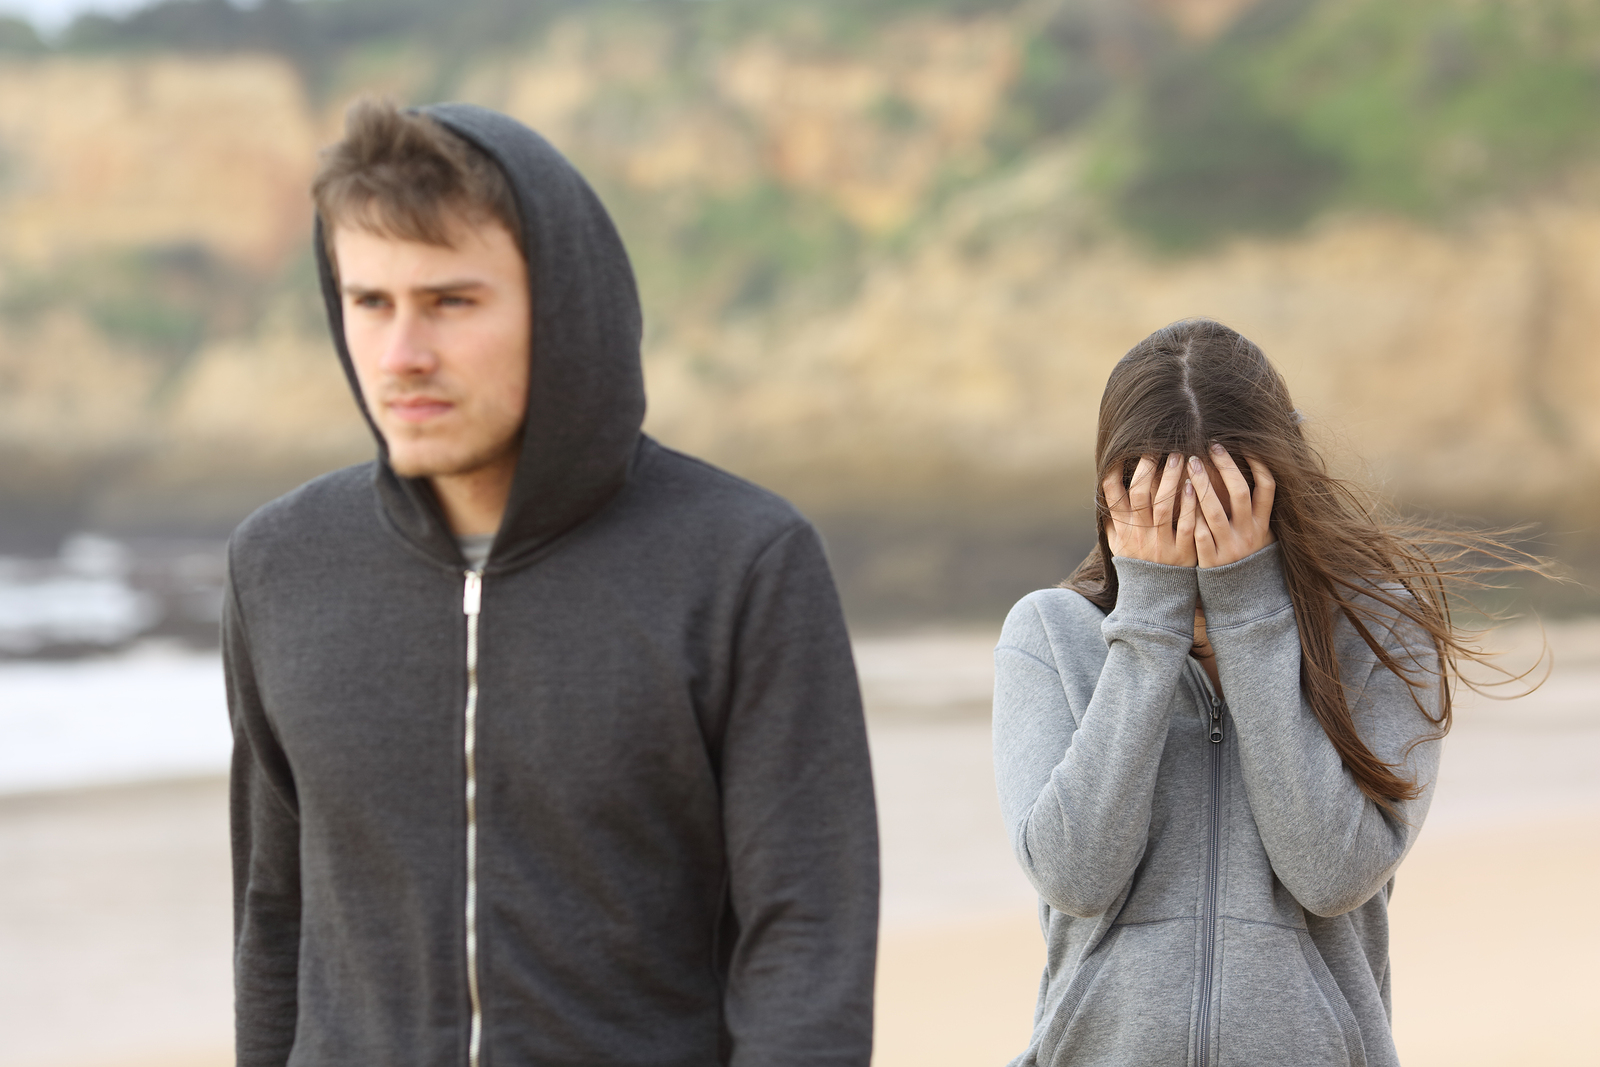 Teenager couple breaking up. The angry boyfriend leaves his sad girlfriend